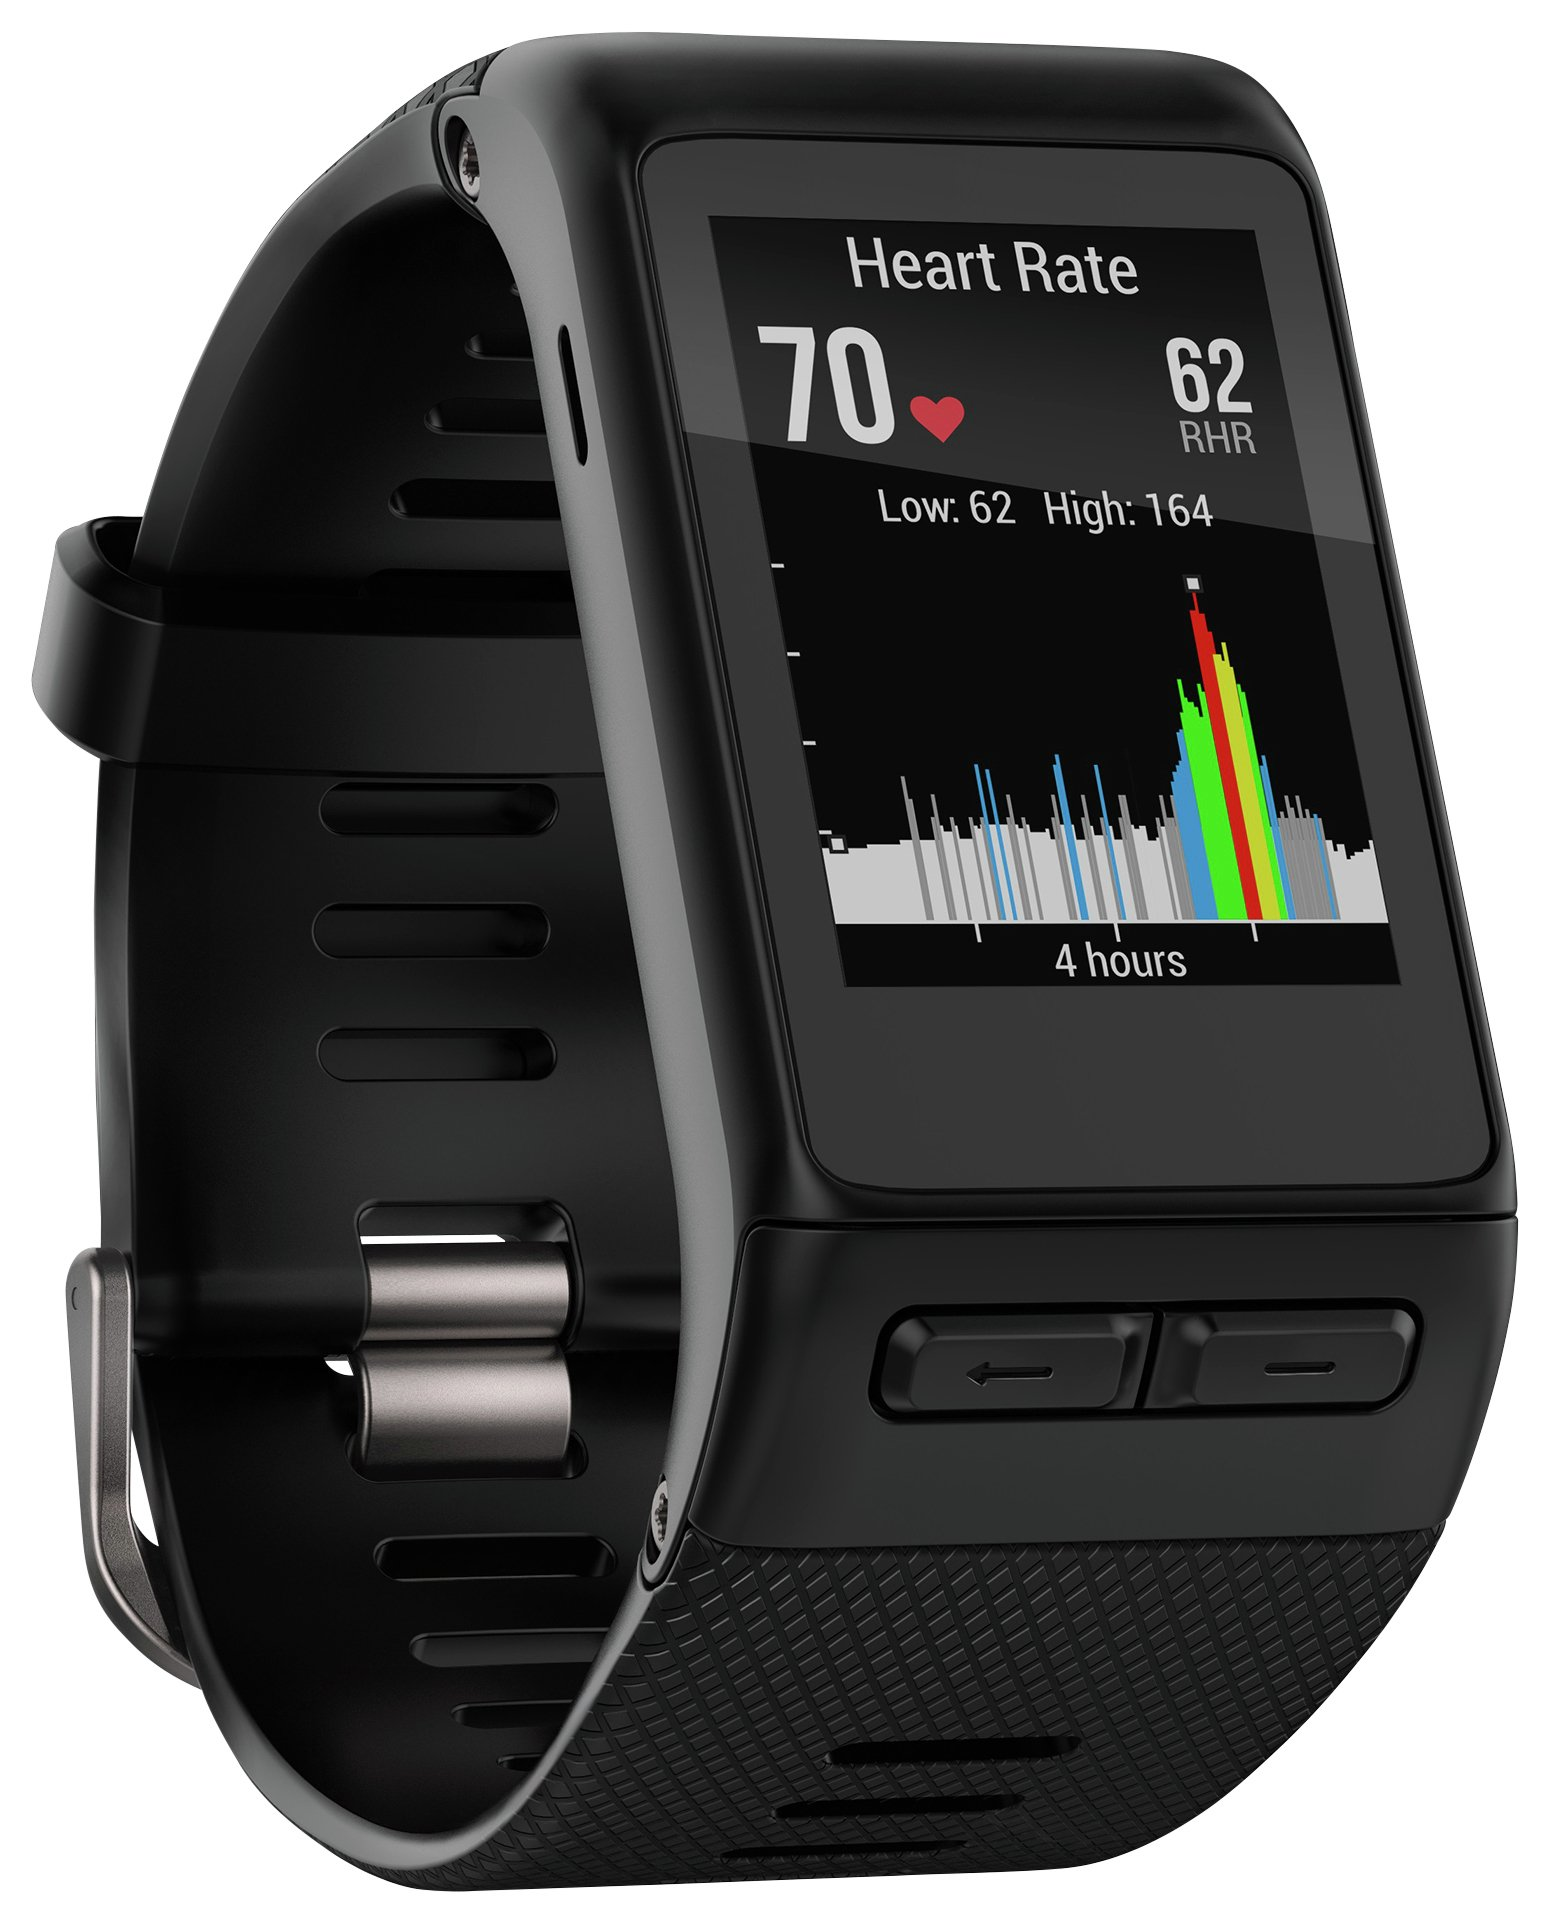 Garmin Garmin - X Large Vivoactive Heart Rate GPS - Black